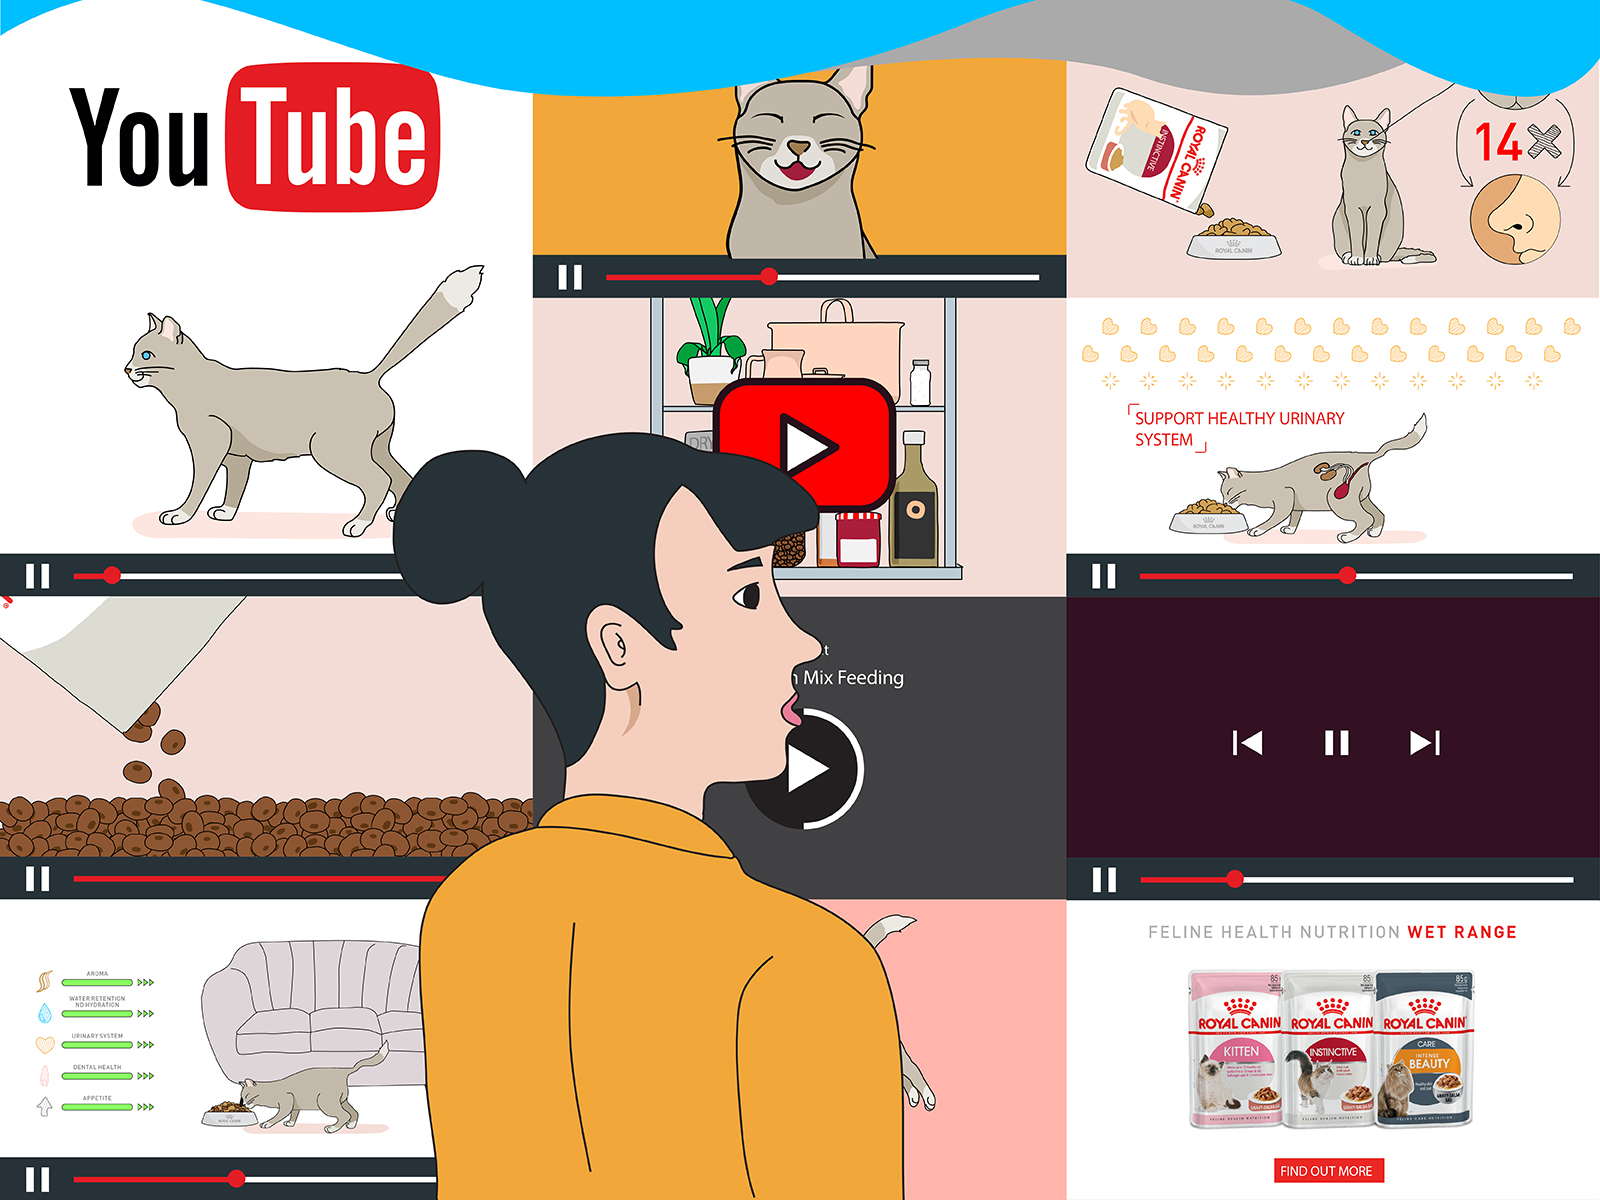 Royal Canin wet food promotional video screenshot showing various cat and wet food product packaging scenes